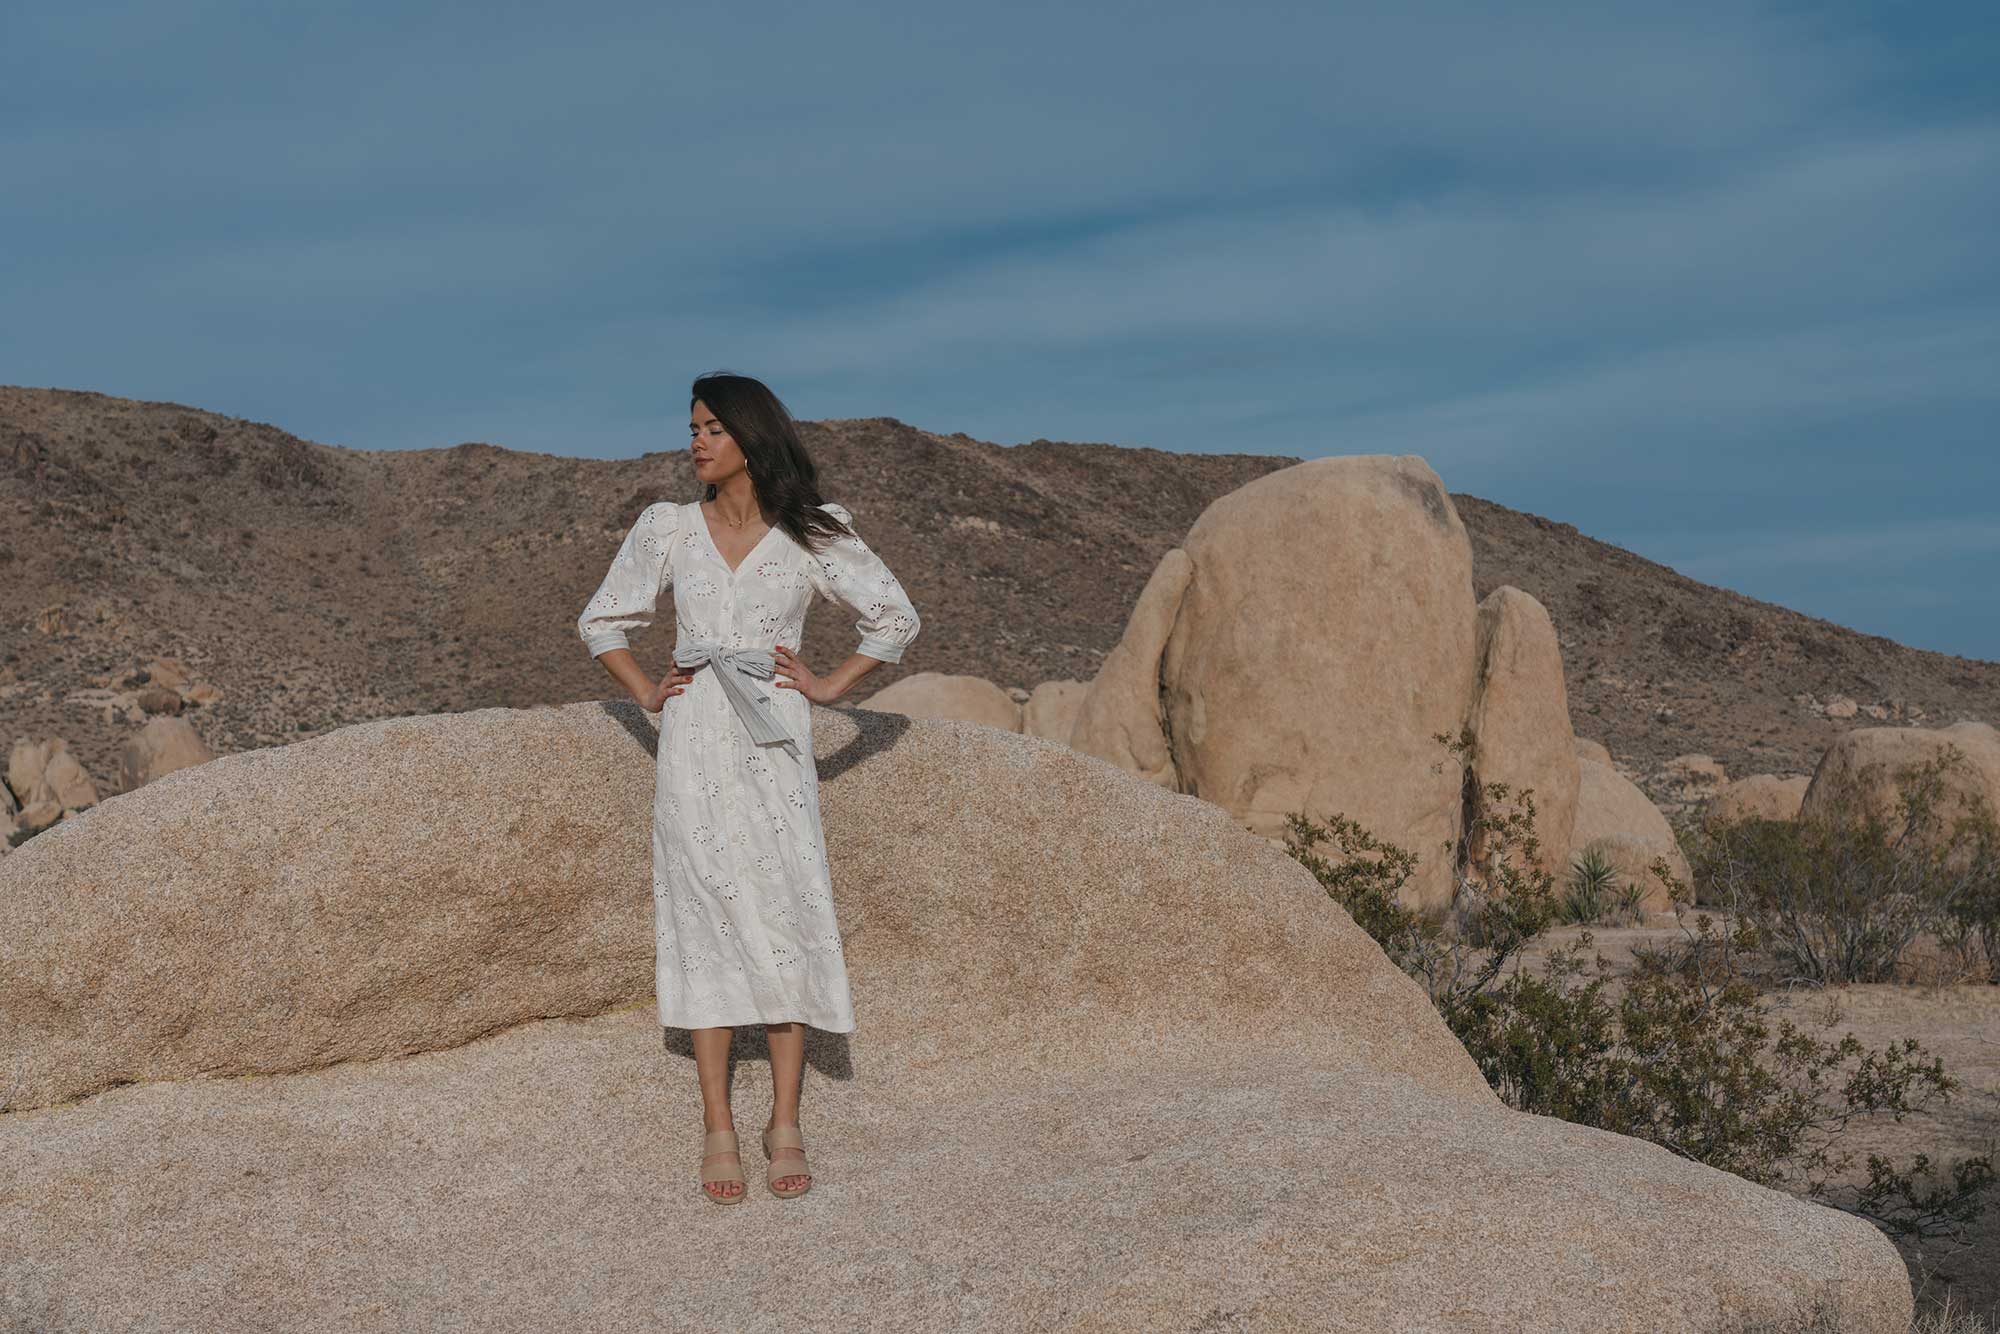 Rebecca-Taylor-vintage-inspired-eyelet-dress-Joshua-Tree-Festival-Outfit--14.jpg